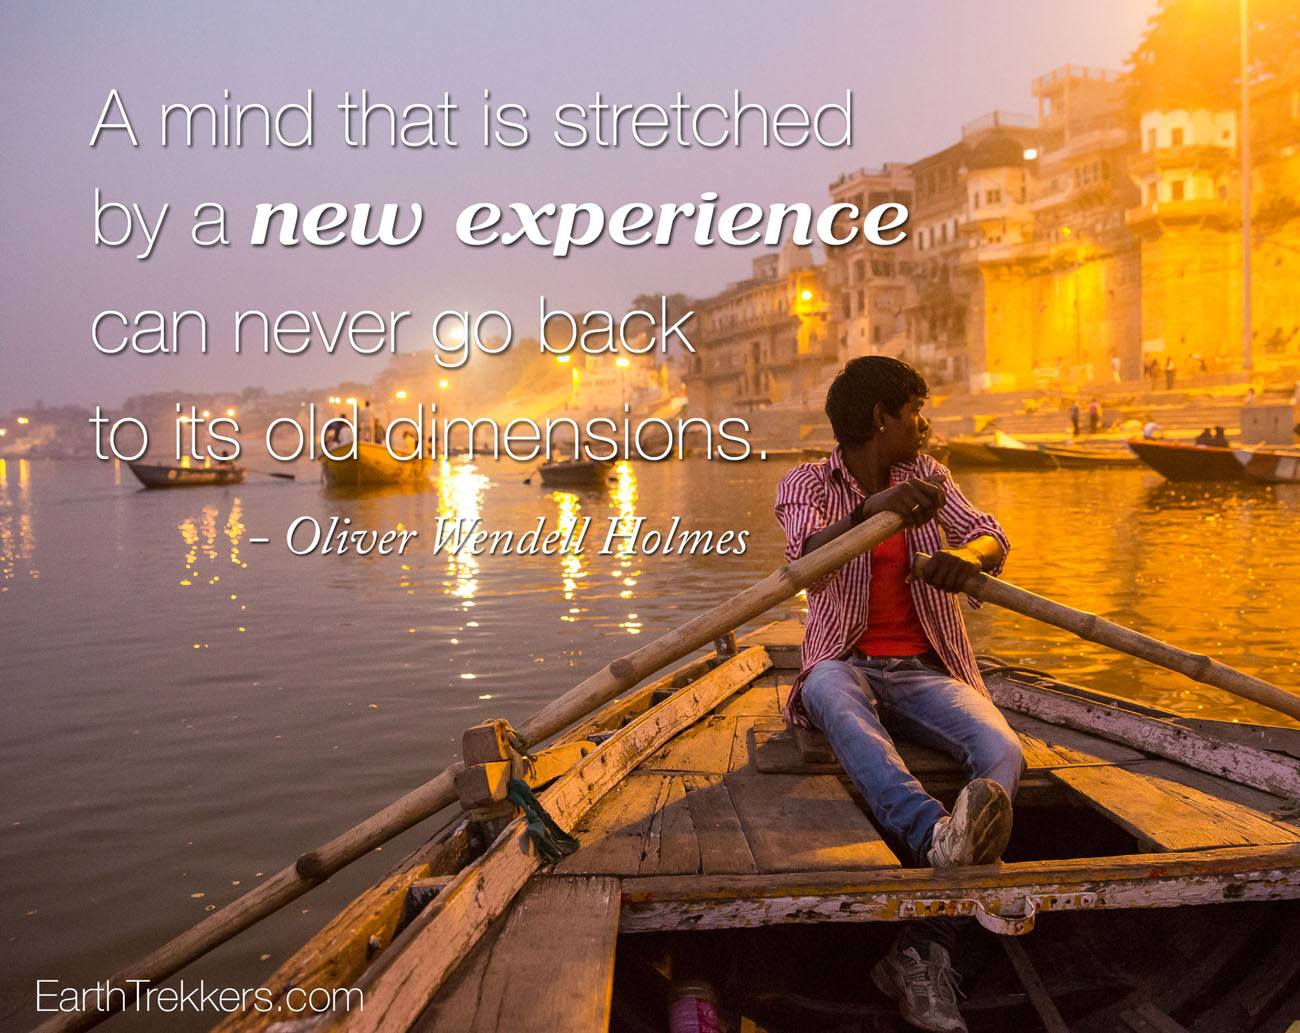 Mind stretched by a new experience